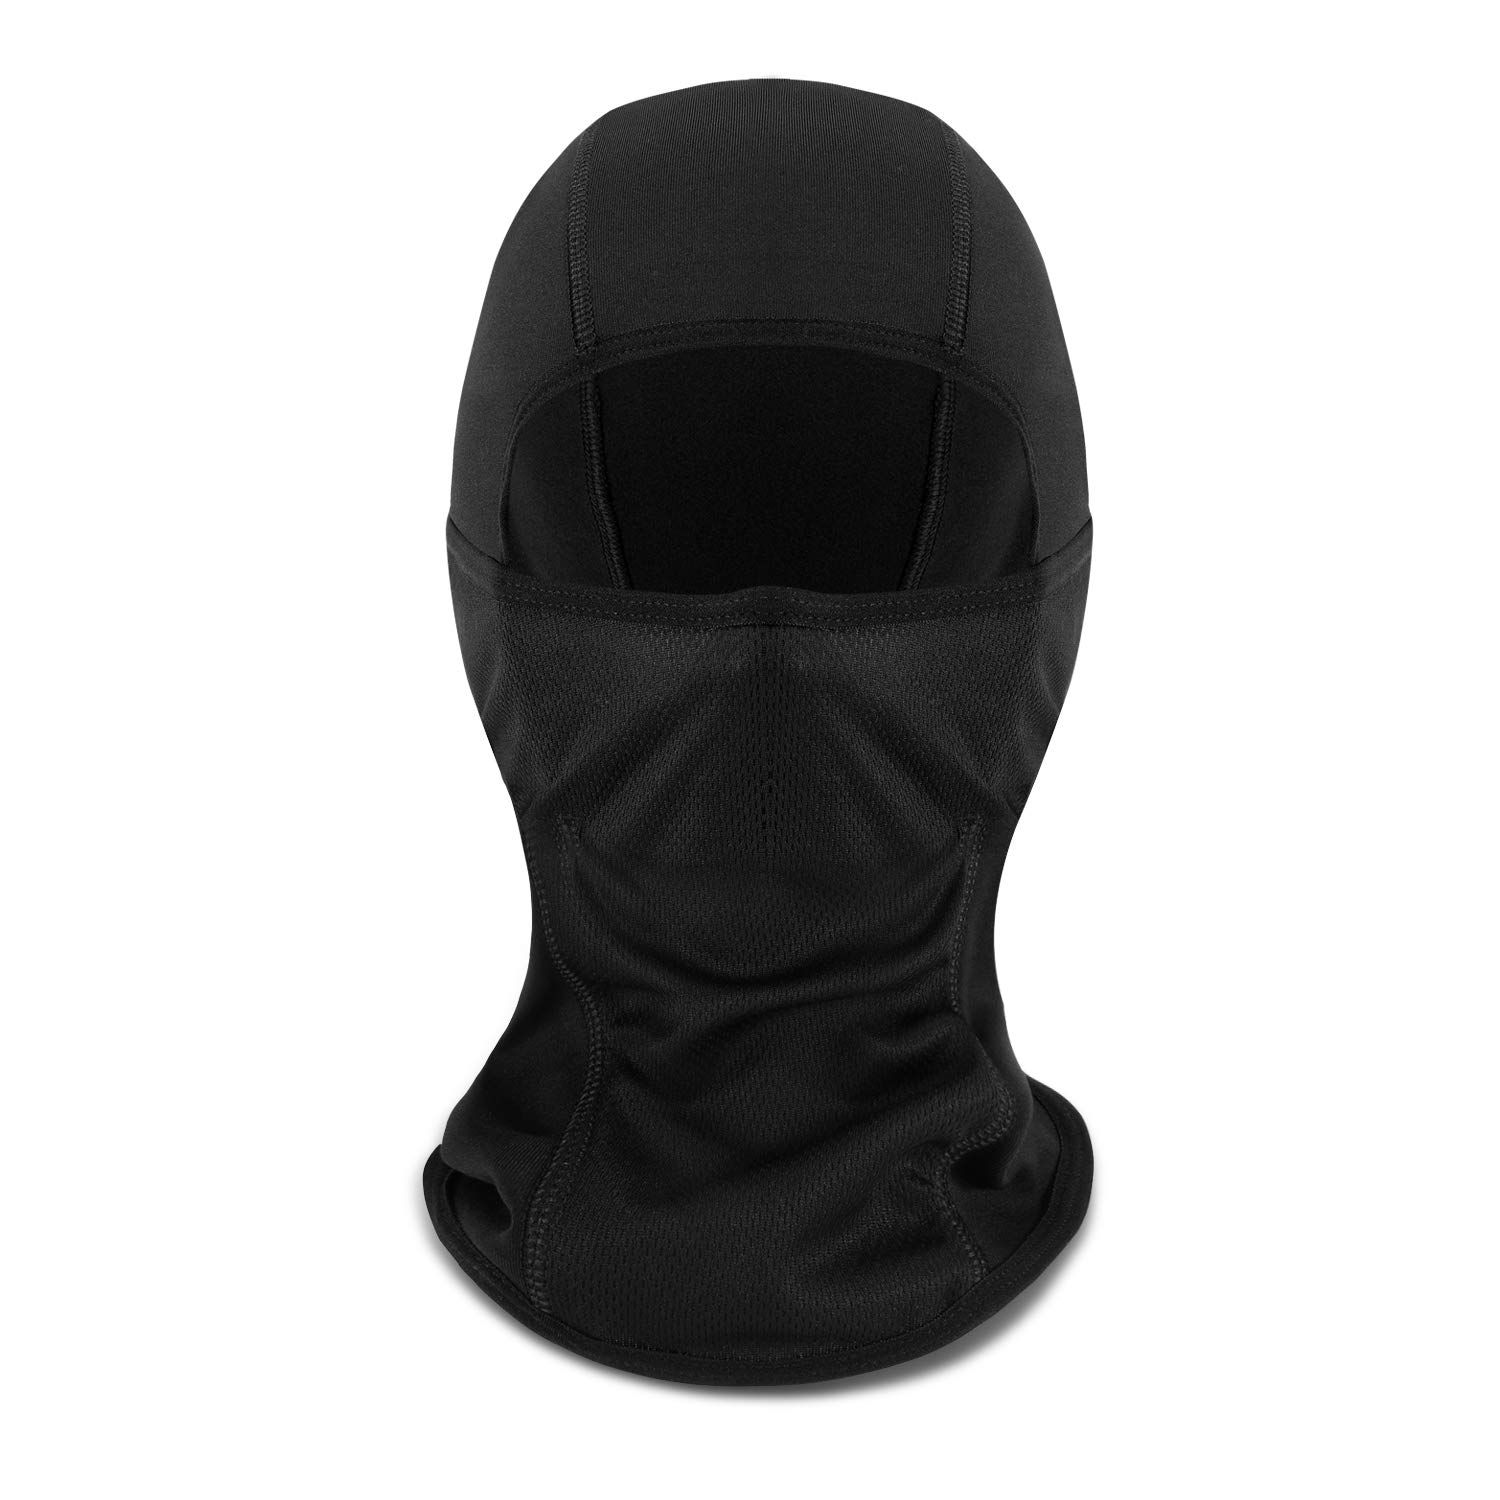 Eadali Balaclava Windproof Ski Face Mask for Cold Weather Neck Warmer Hat Mask